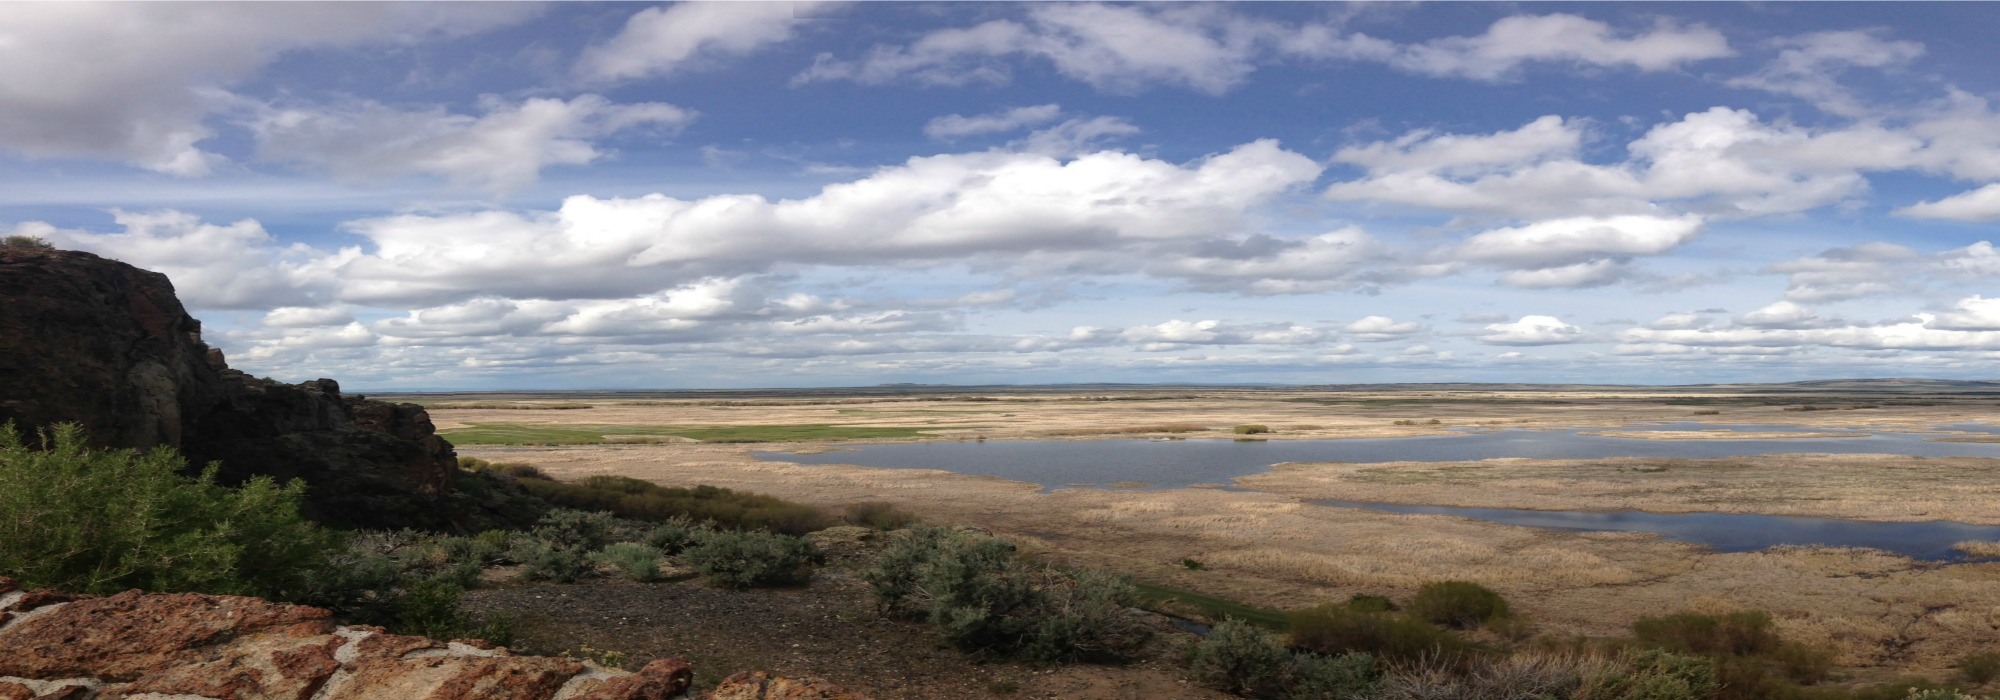 expansive view of desert lakes reflecting blue skies and billowing clouds